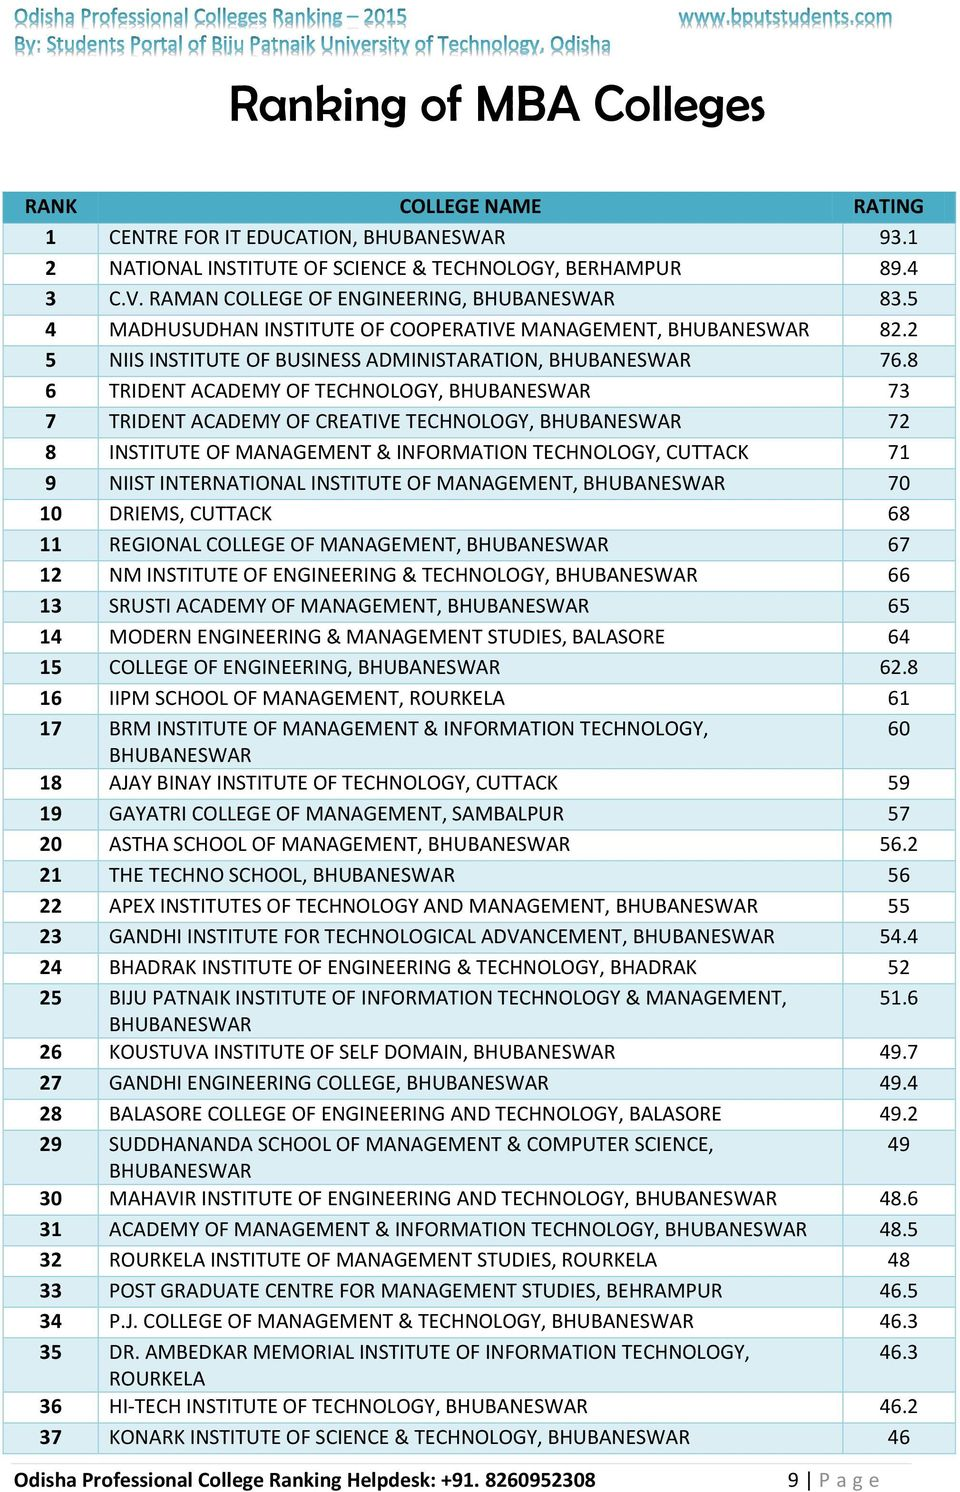 8 6 TRIDENT ACADEMY OF TECHNOLOGY, 73 7 TRIDENT ACADEMY OF CREATIVE TECHNOLOGY, 72 8 INSTITUTE OF MANAGEMENT & INFORMATION TECHNOLOGY, CUTTACK 71 9 NIIST INTERNATIONAL INSTITUTE OF MANAGEMENT, 70 10